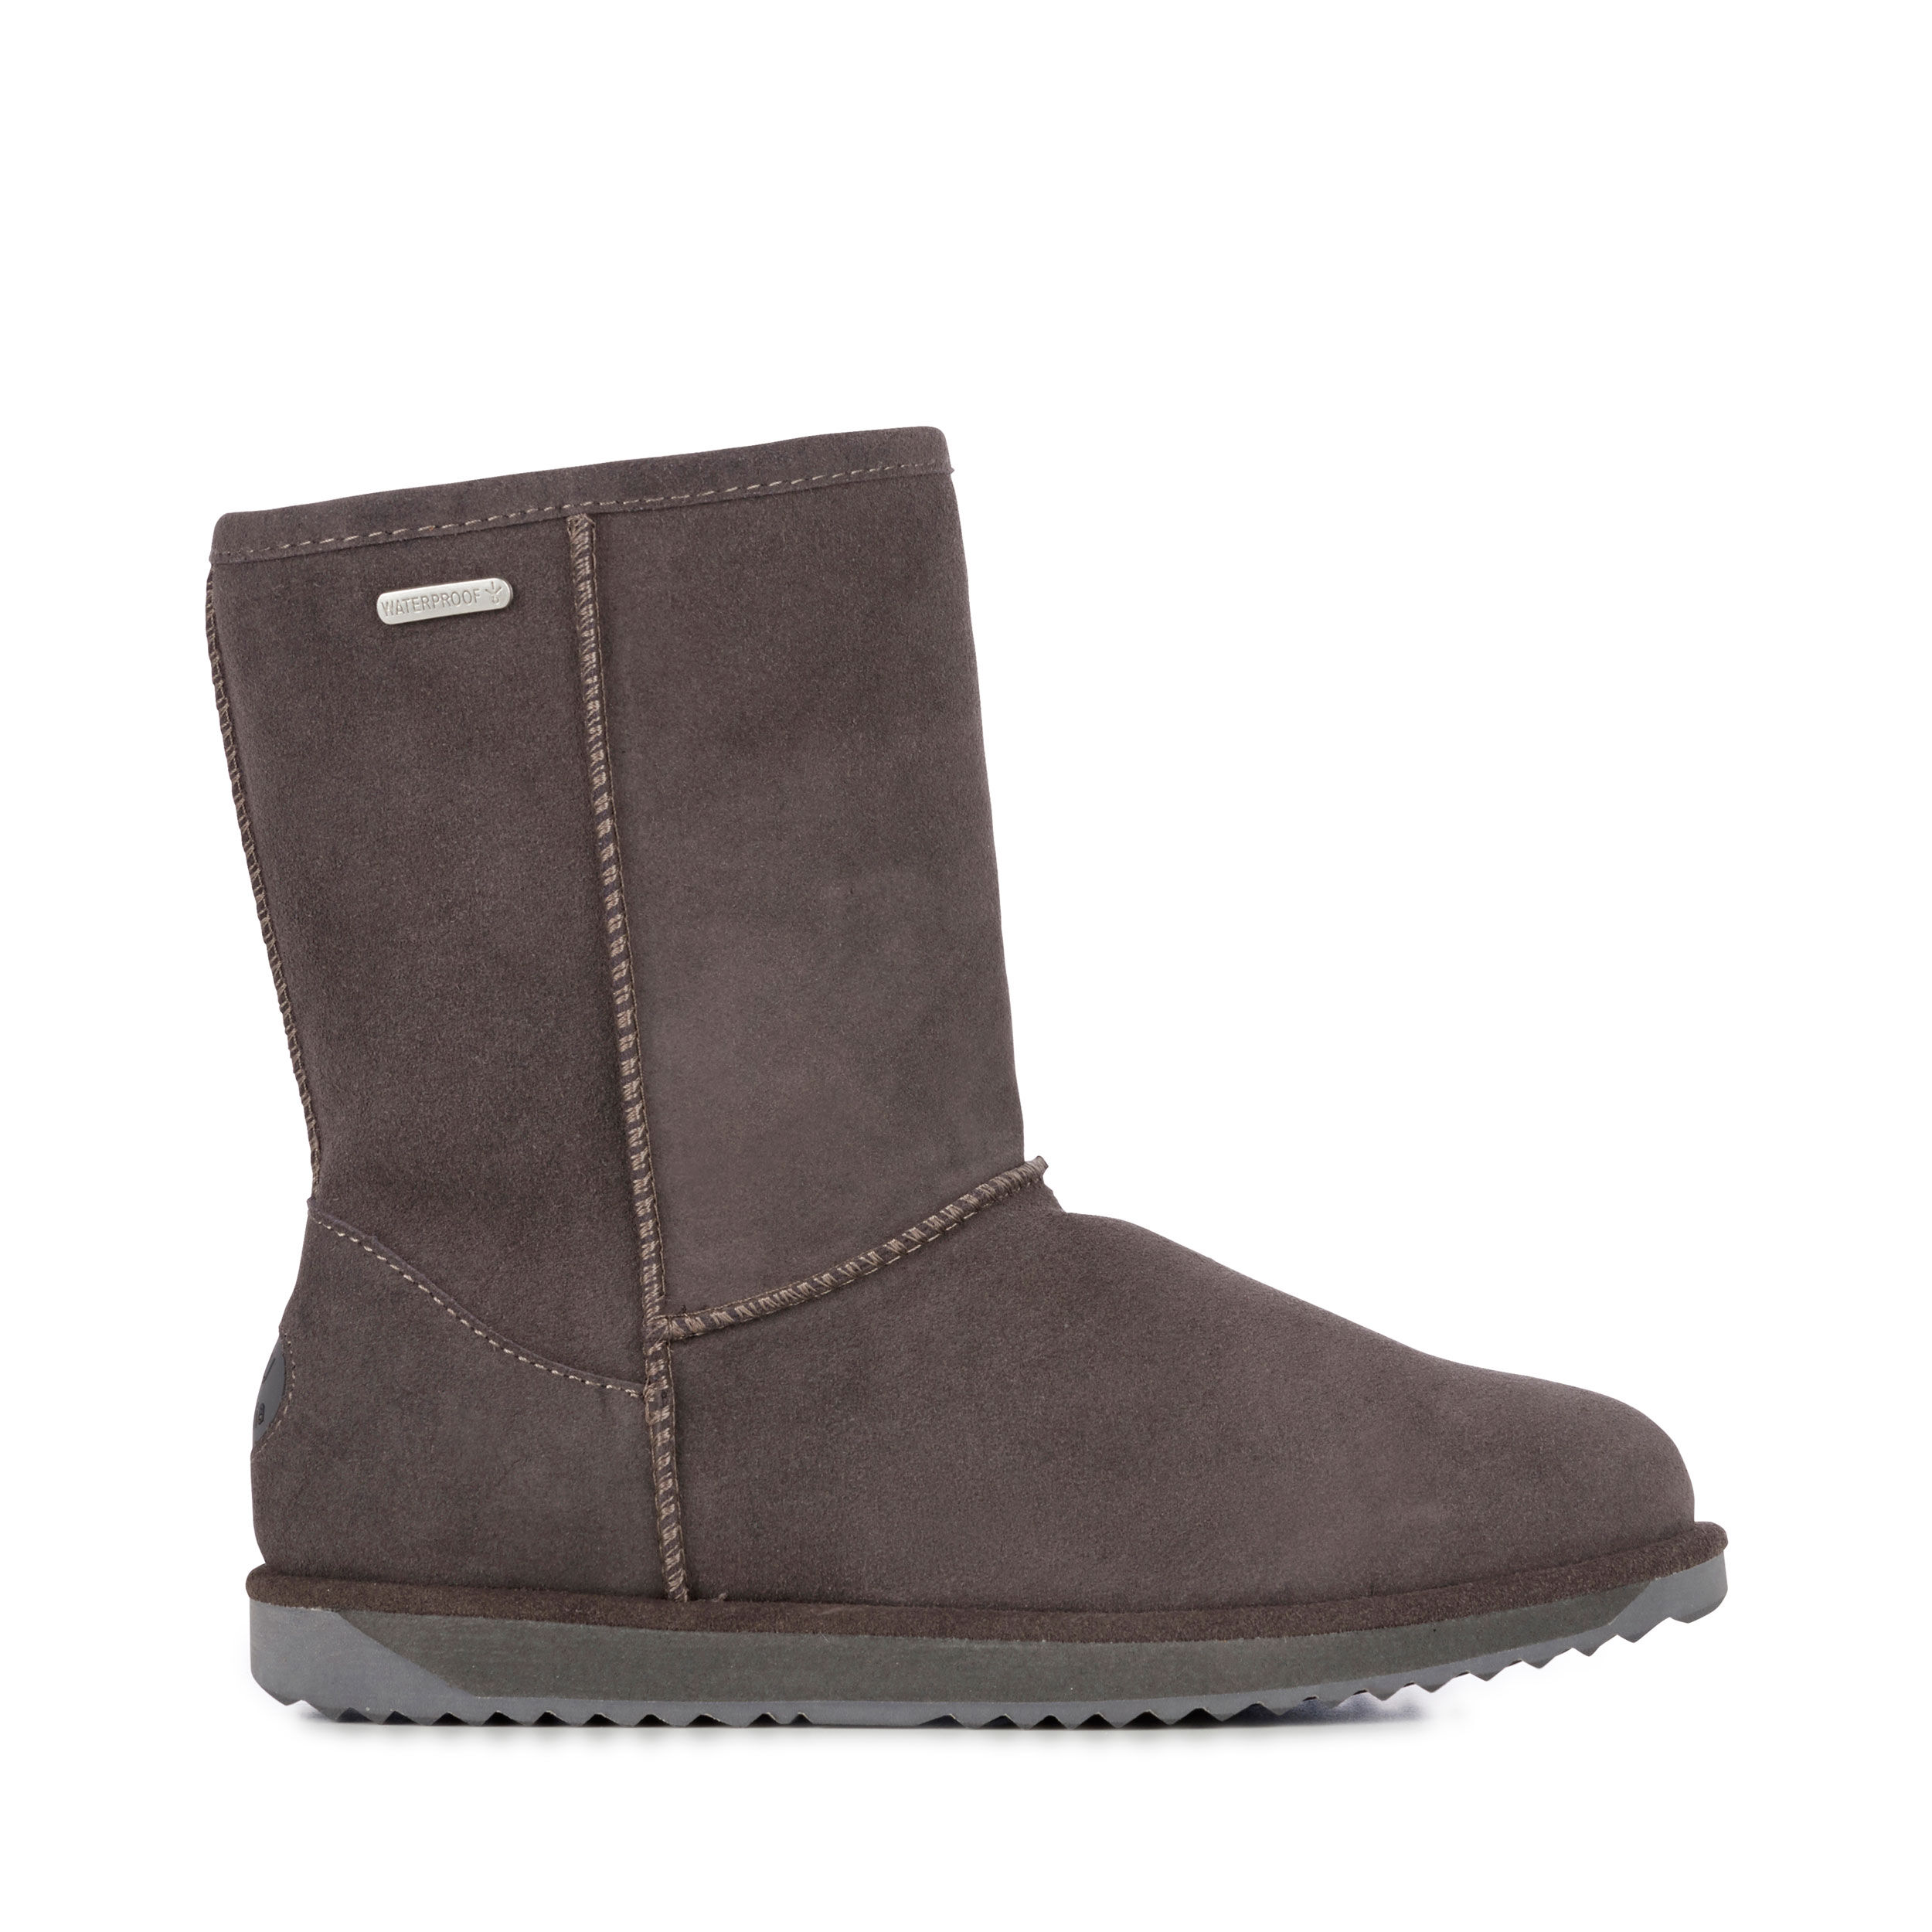 Emu Australia Women's Paterson Classic Lo Charcoal Snow Boots Buy Cheap Eastbay Great Deals Cheap Price Buy Cheap Genuine LaCa69G6S